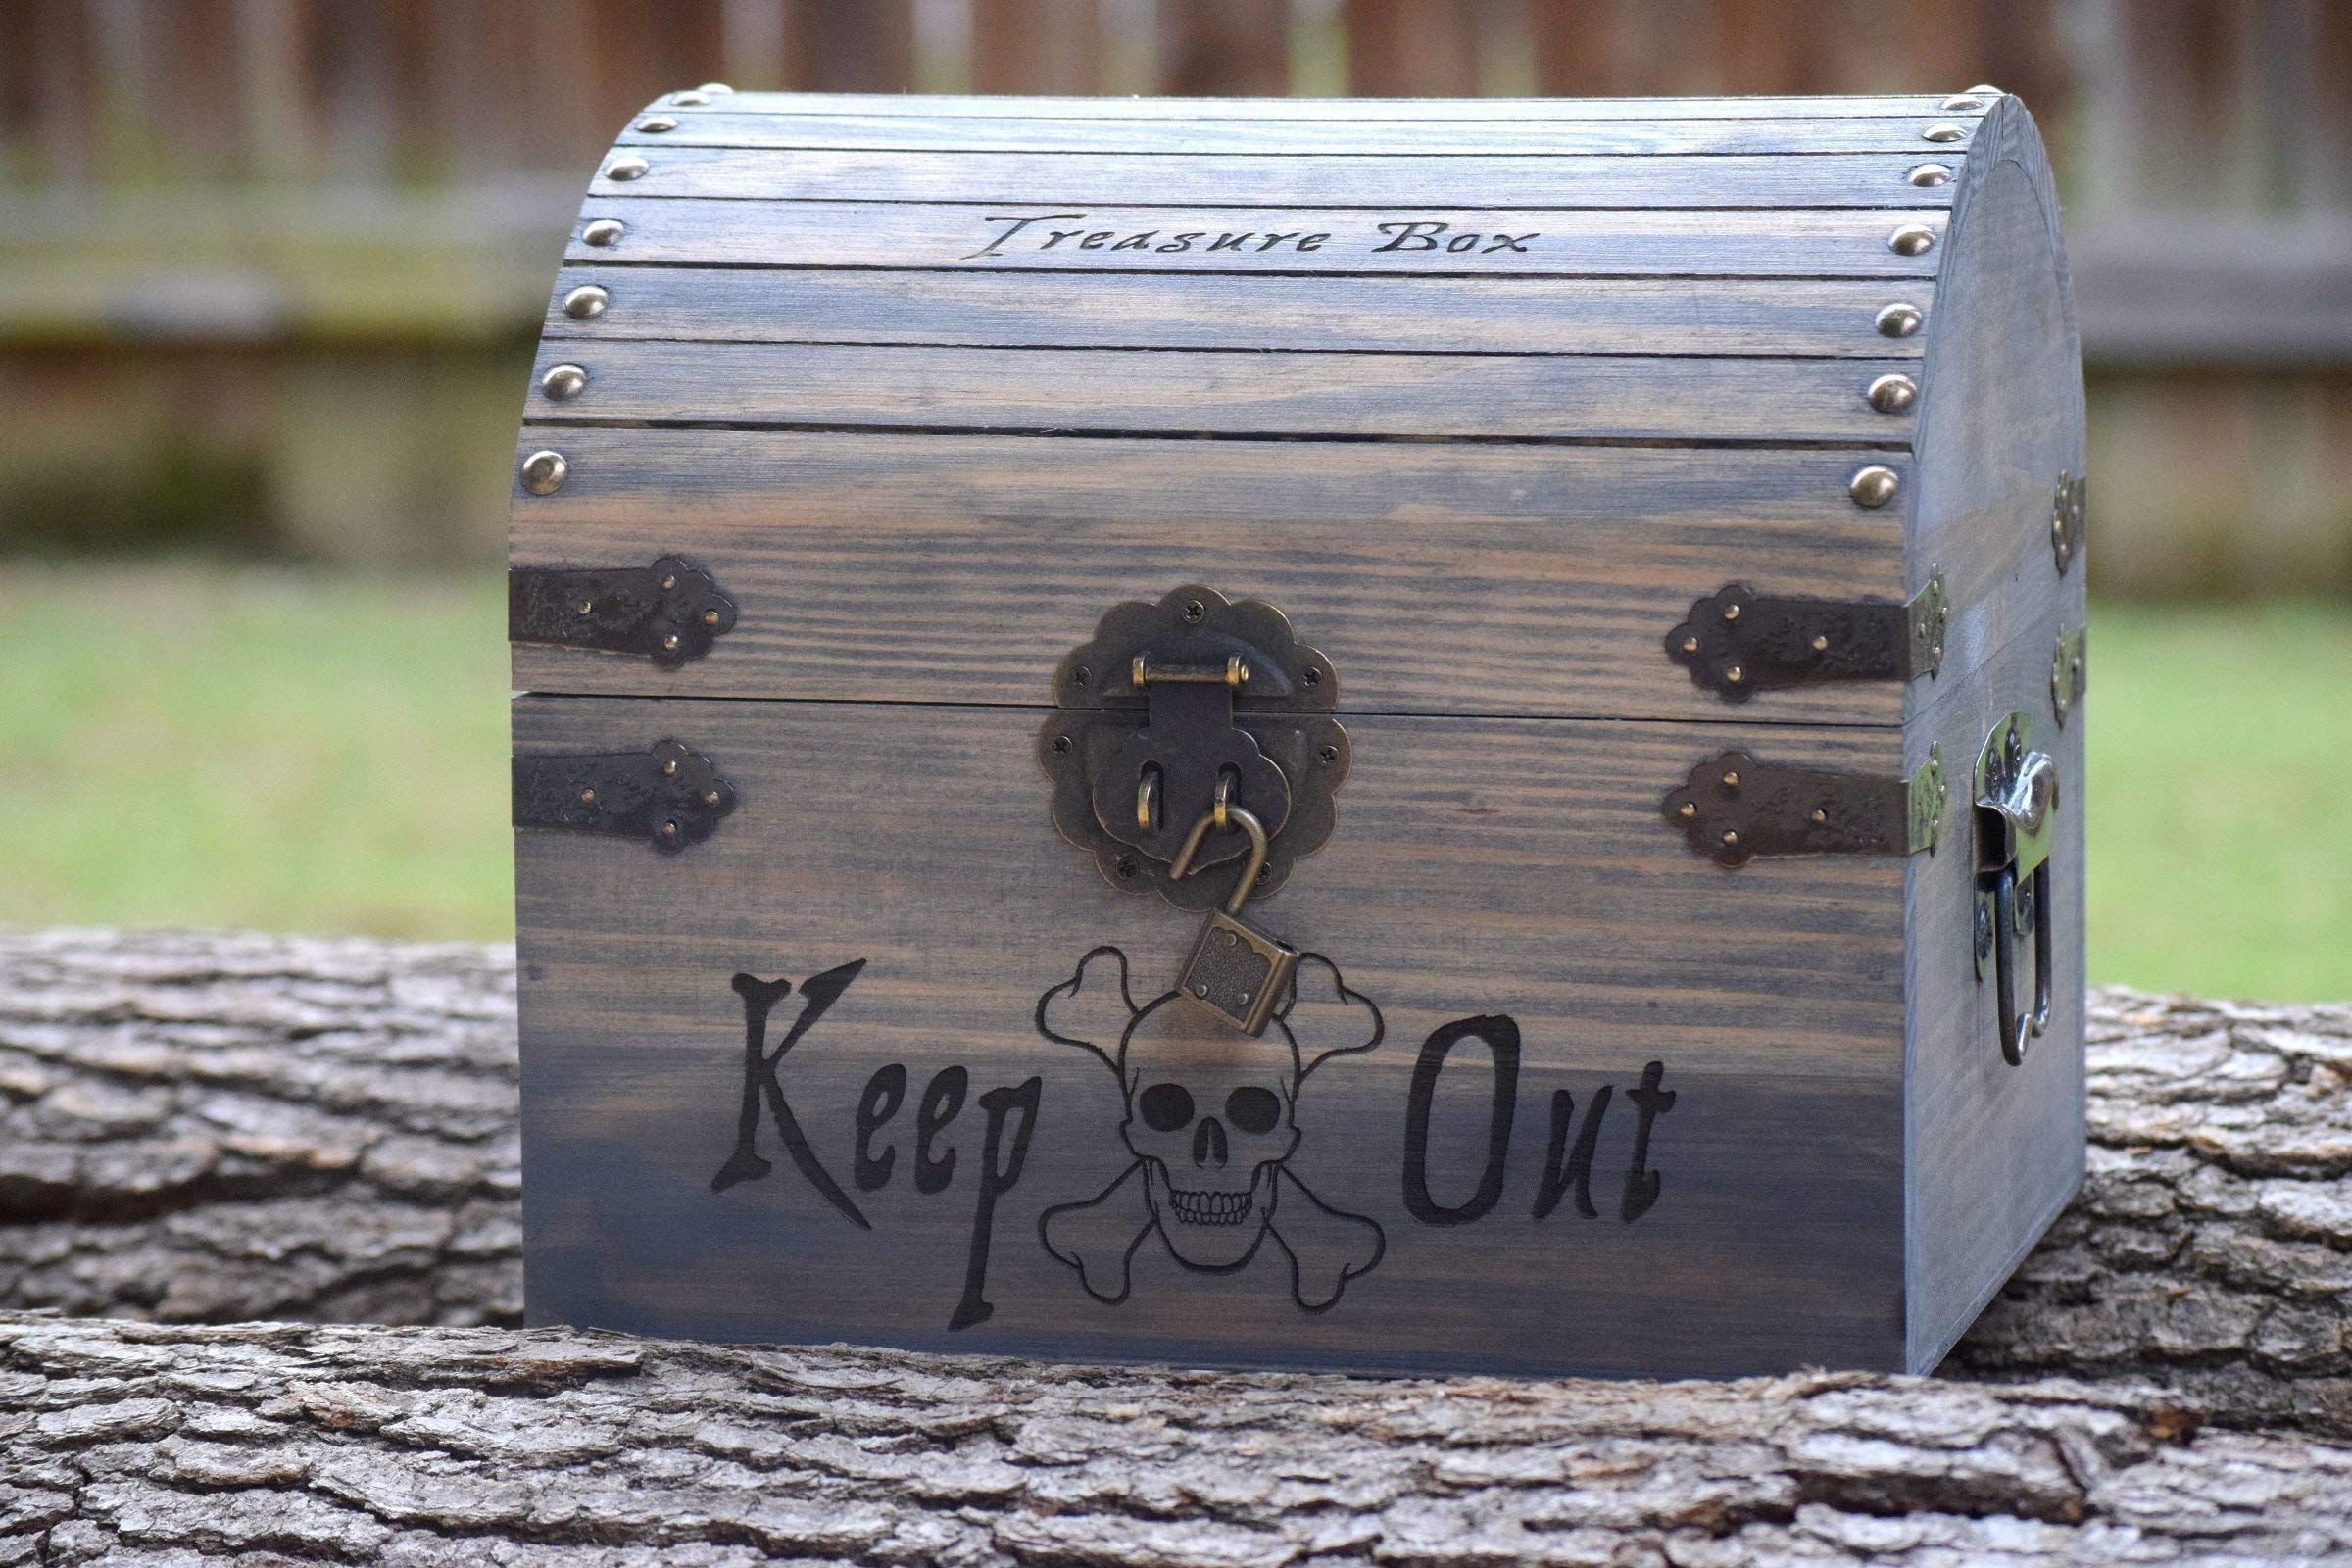 Kids Toy Chest - Kids Treasure Chest - Personalized Gift for Kids - Children's Treasure Chest - Gift for Kids - Pirate Treasure Chest - Kids Christmas Gifts by Country Barn Babe